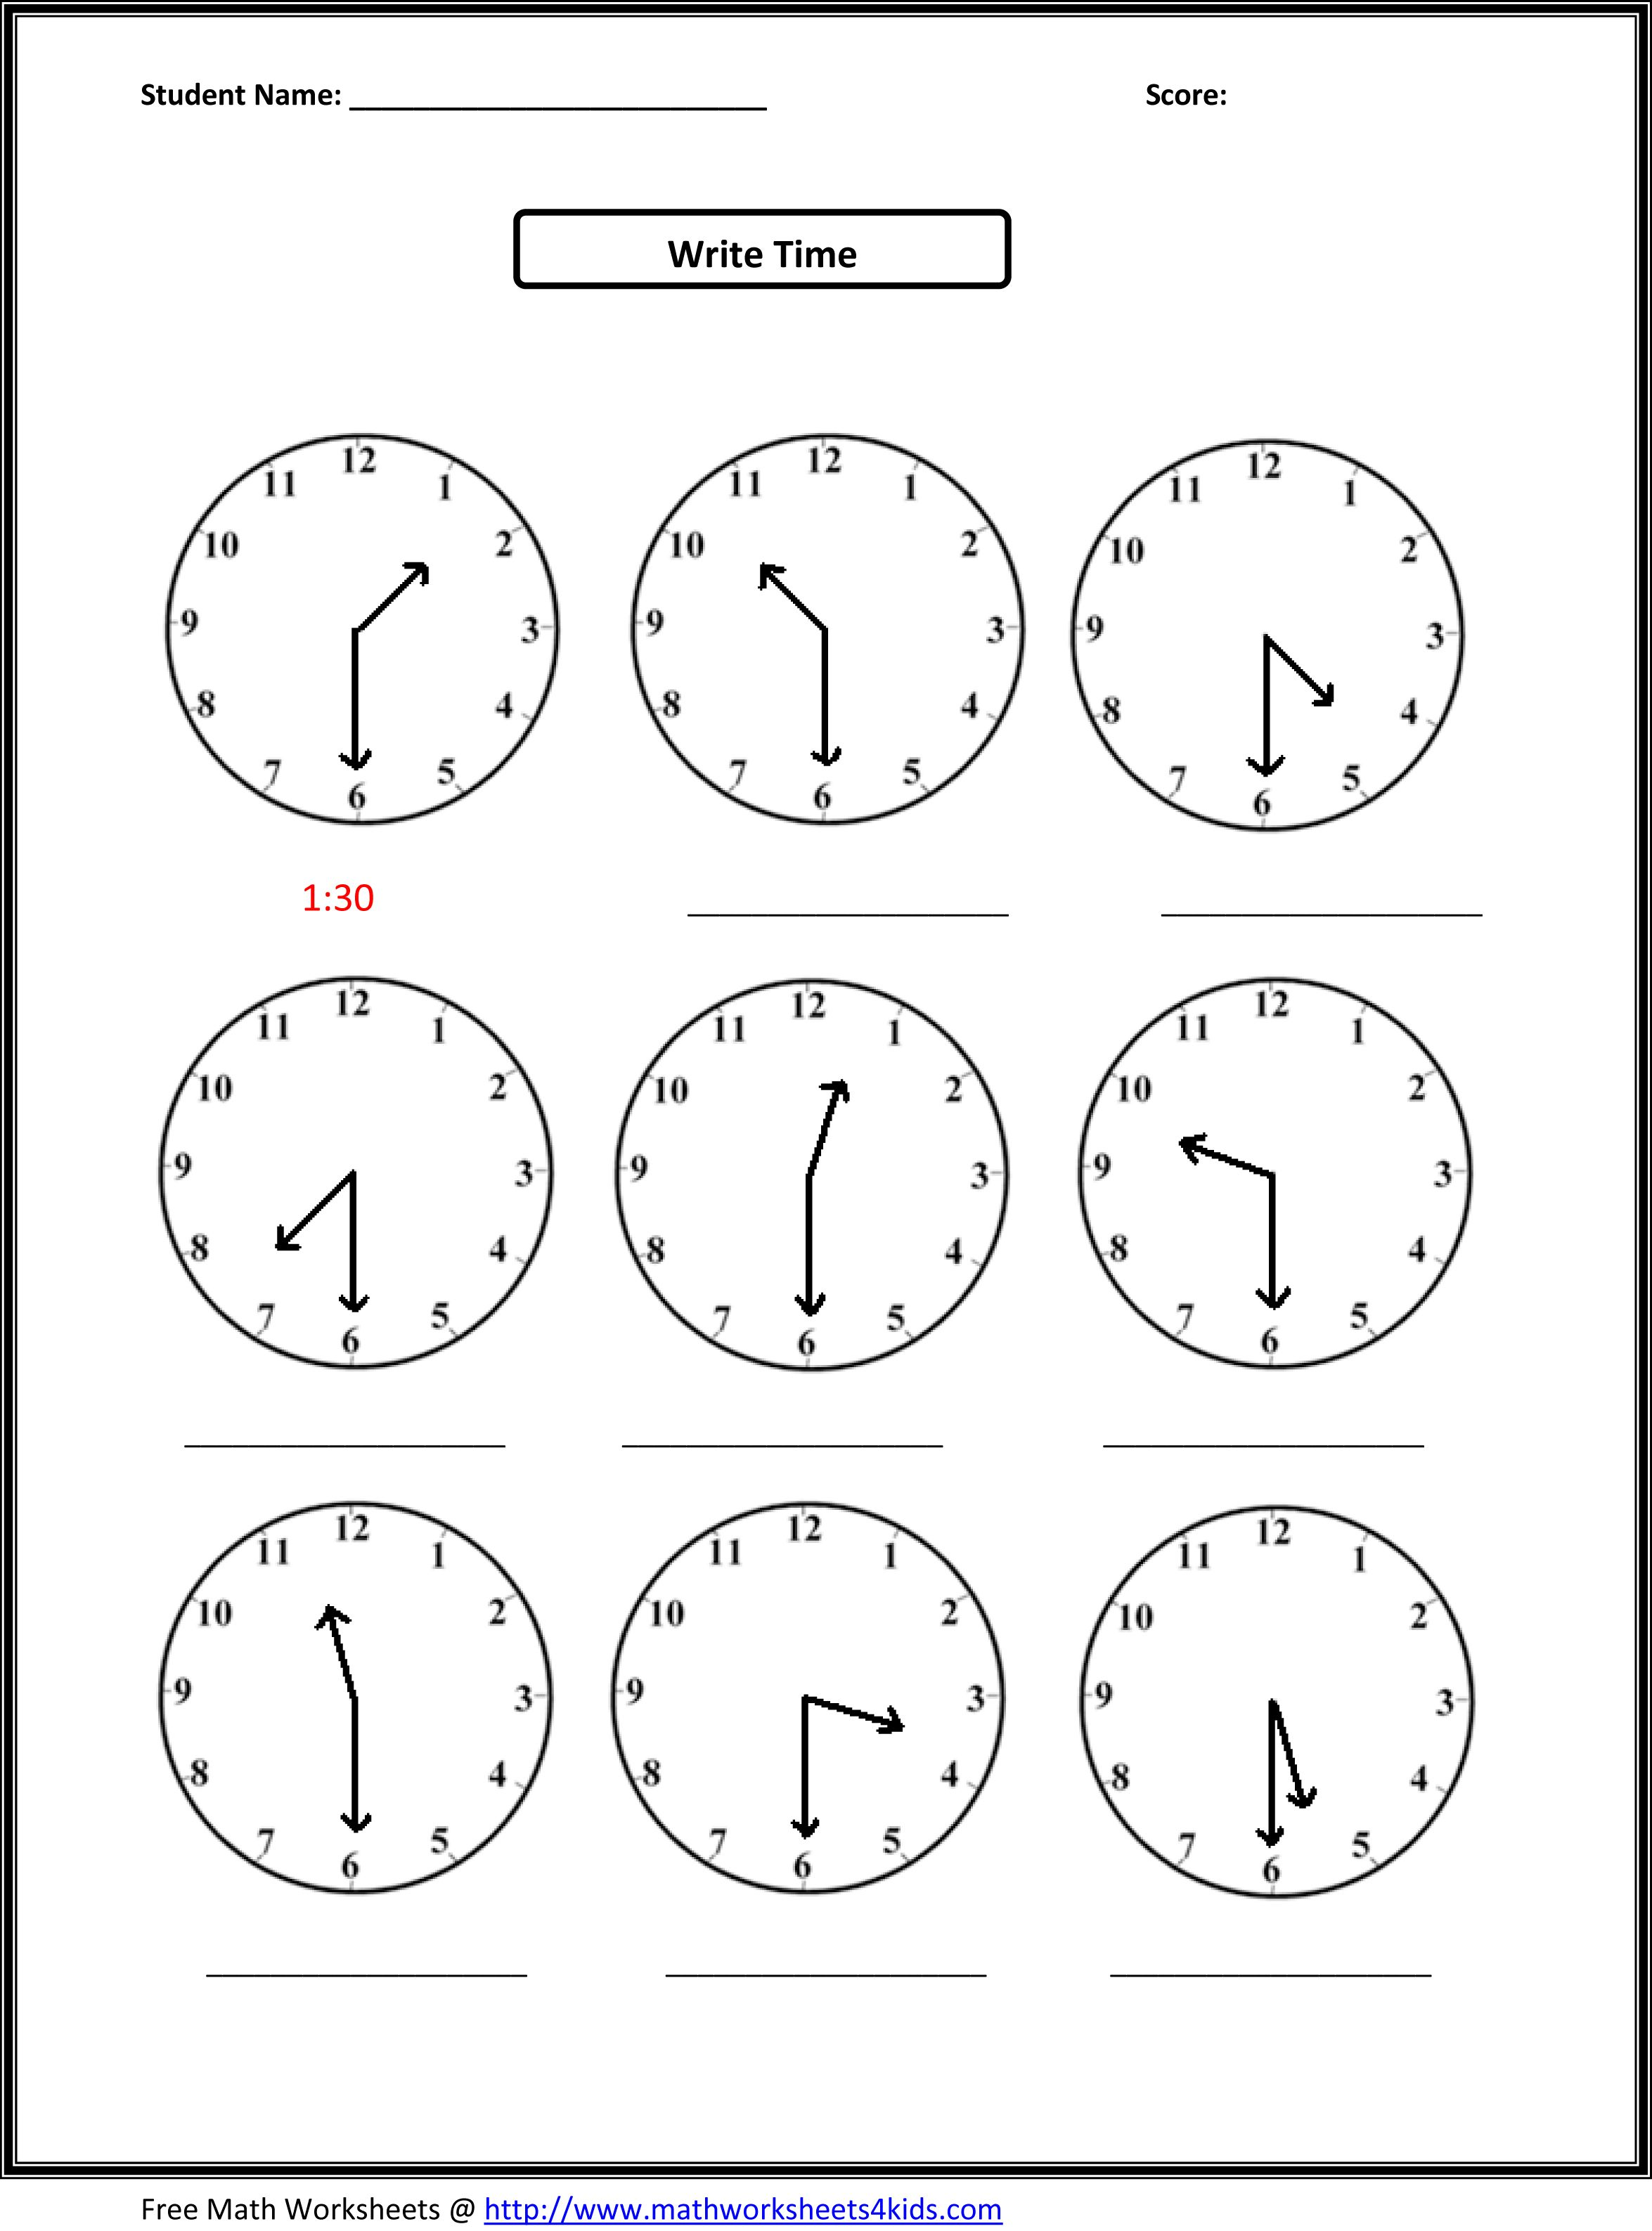 Proatmealus  Sweet Worksheet On Time For Grade   Reocurent With Great Free Printable Telling Time Worksheets Nd Grade  Reocurent With Lovely Subtraction Worksheets To  Also Worksheet Alphabetical Order In Addition Worksheets Work Math And Spider Math Worksheets As Well As Trace Numbers Worksheets Additionally Addition Of Fraction Worksheet From Reocurentcom With Proatmealus  Great Worksheet On Time For Grade   Reocurent With Lovely Free Printable Telling Time Worksheets Nd Grade  Reocurent And Sweet Subtraction Worksheets To  Also Worksheet Alphabetical Order In Addition Worksheets Work Math From Reocurentcom